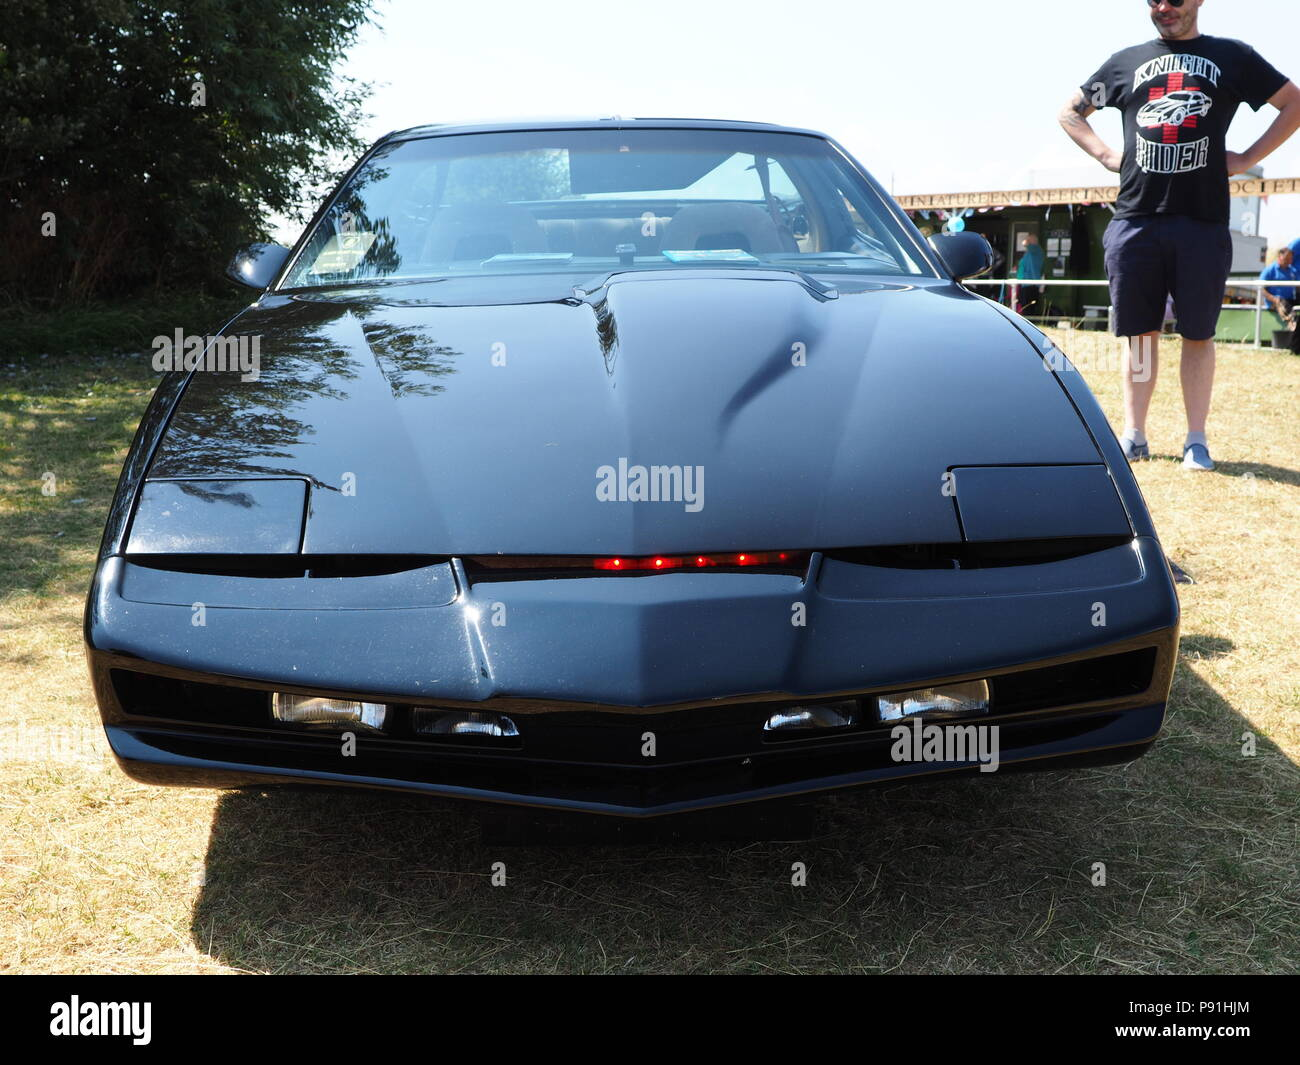 knight rider 1982 full episodes free download